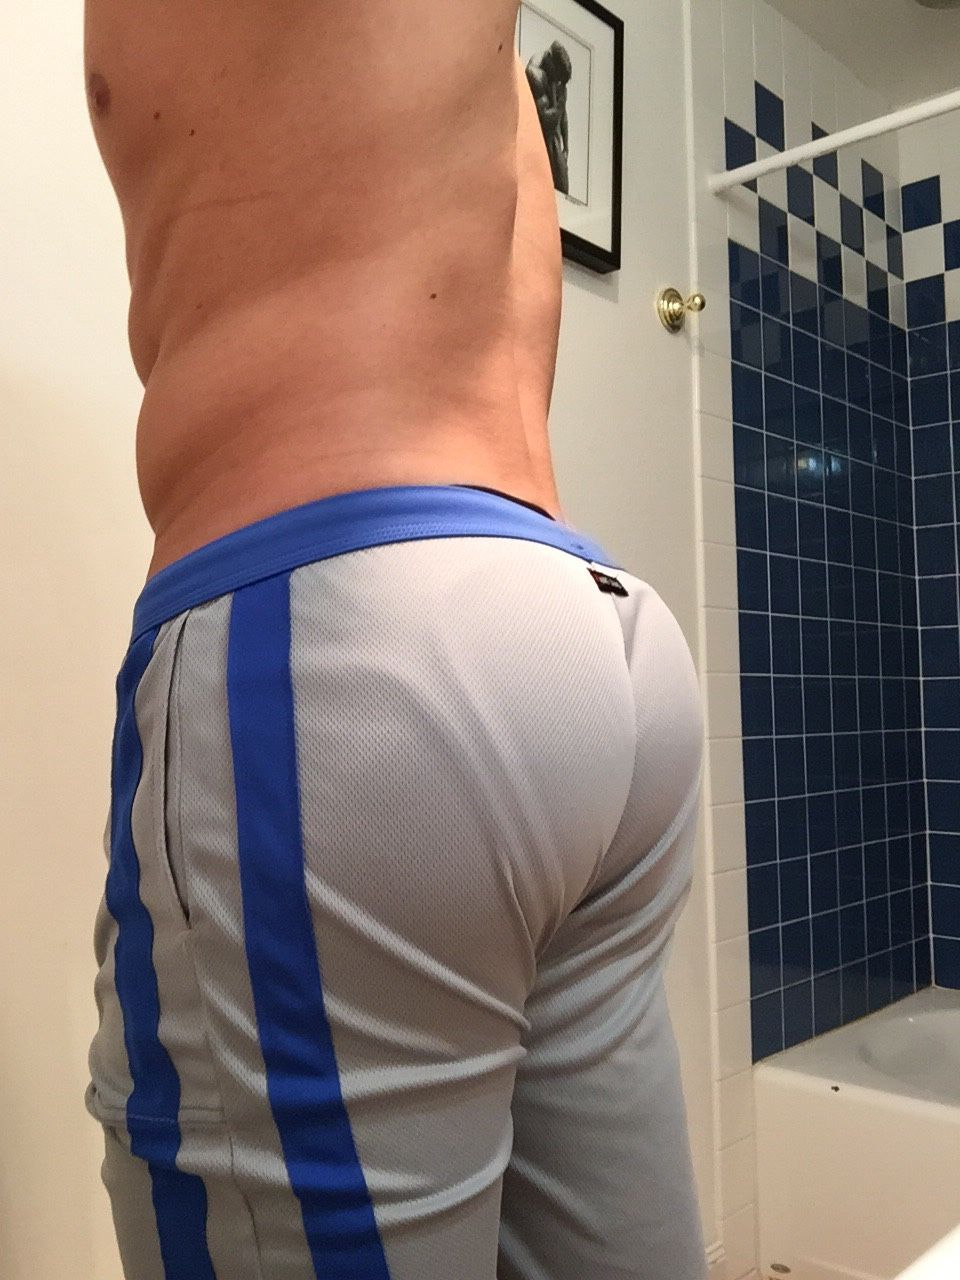 hot guys stuffing willing ass